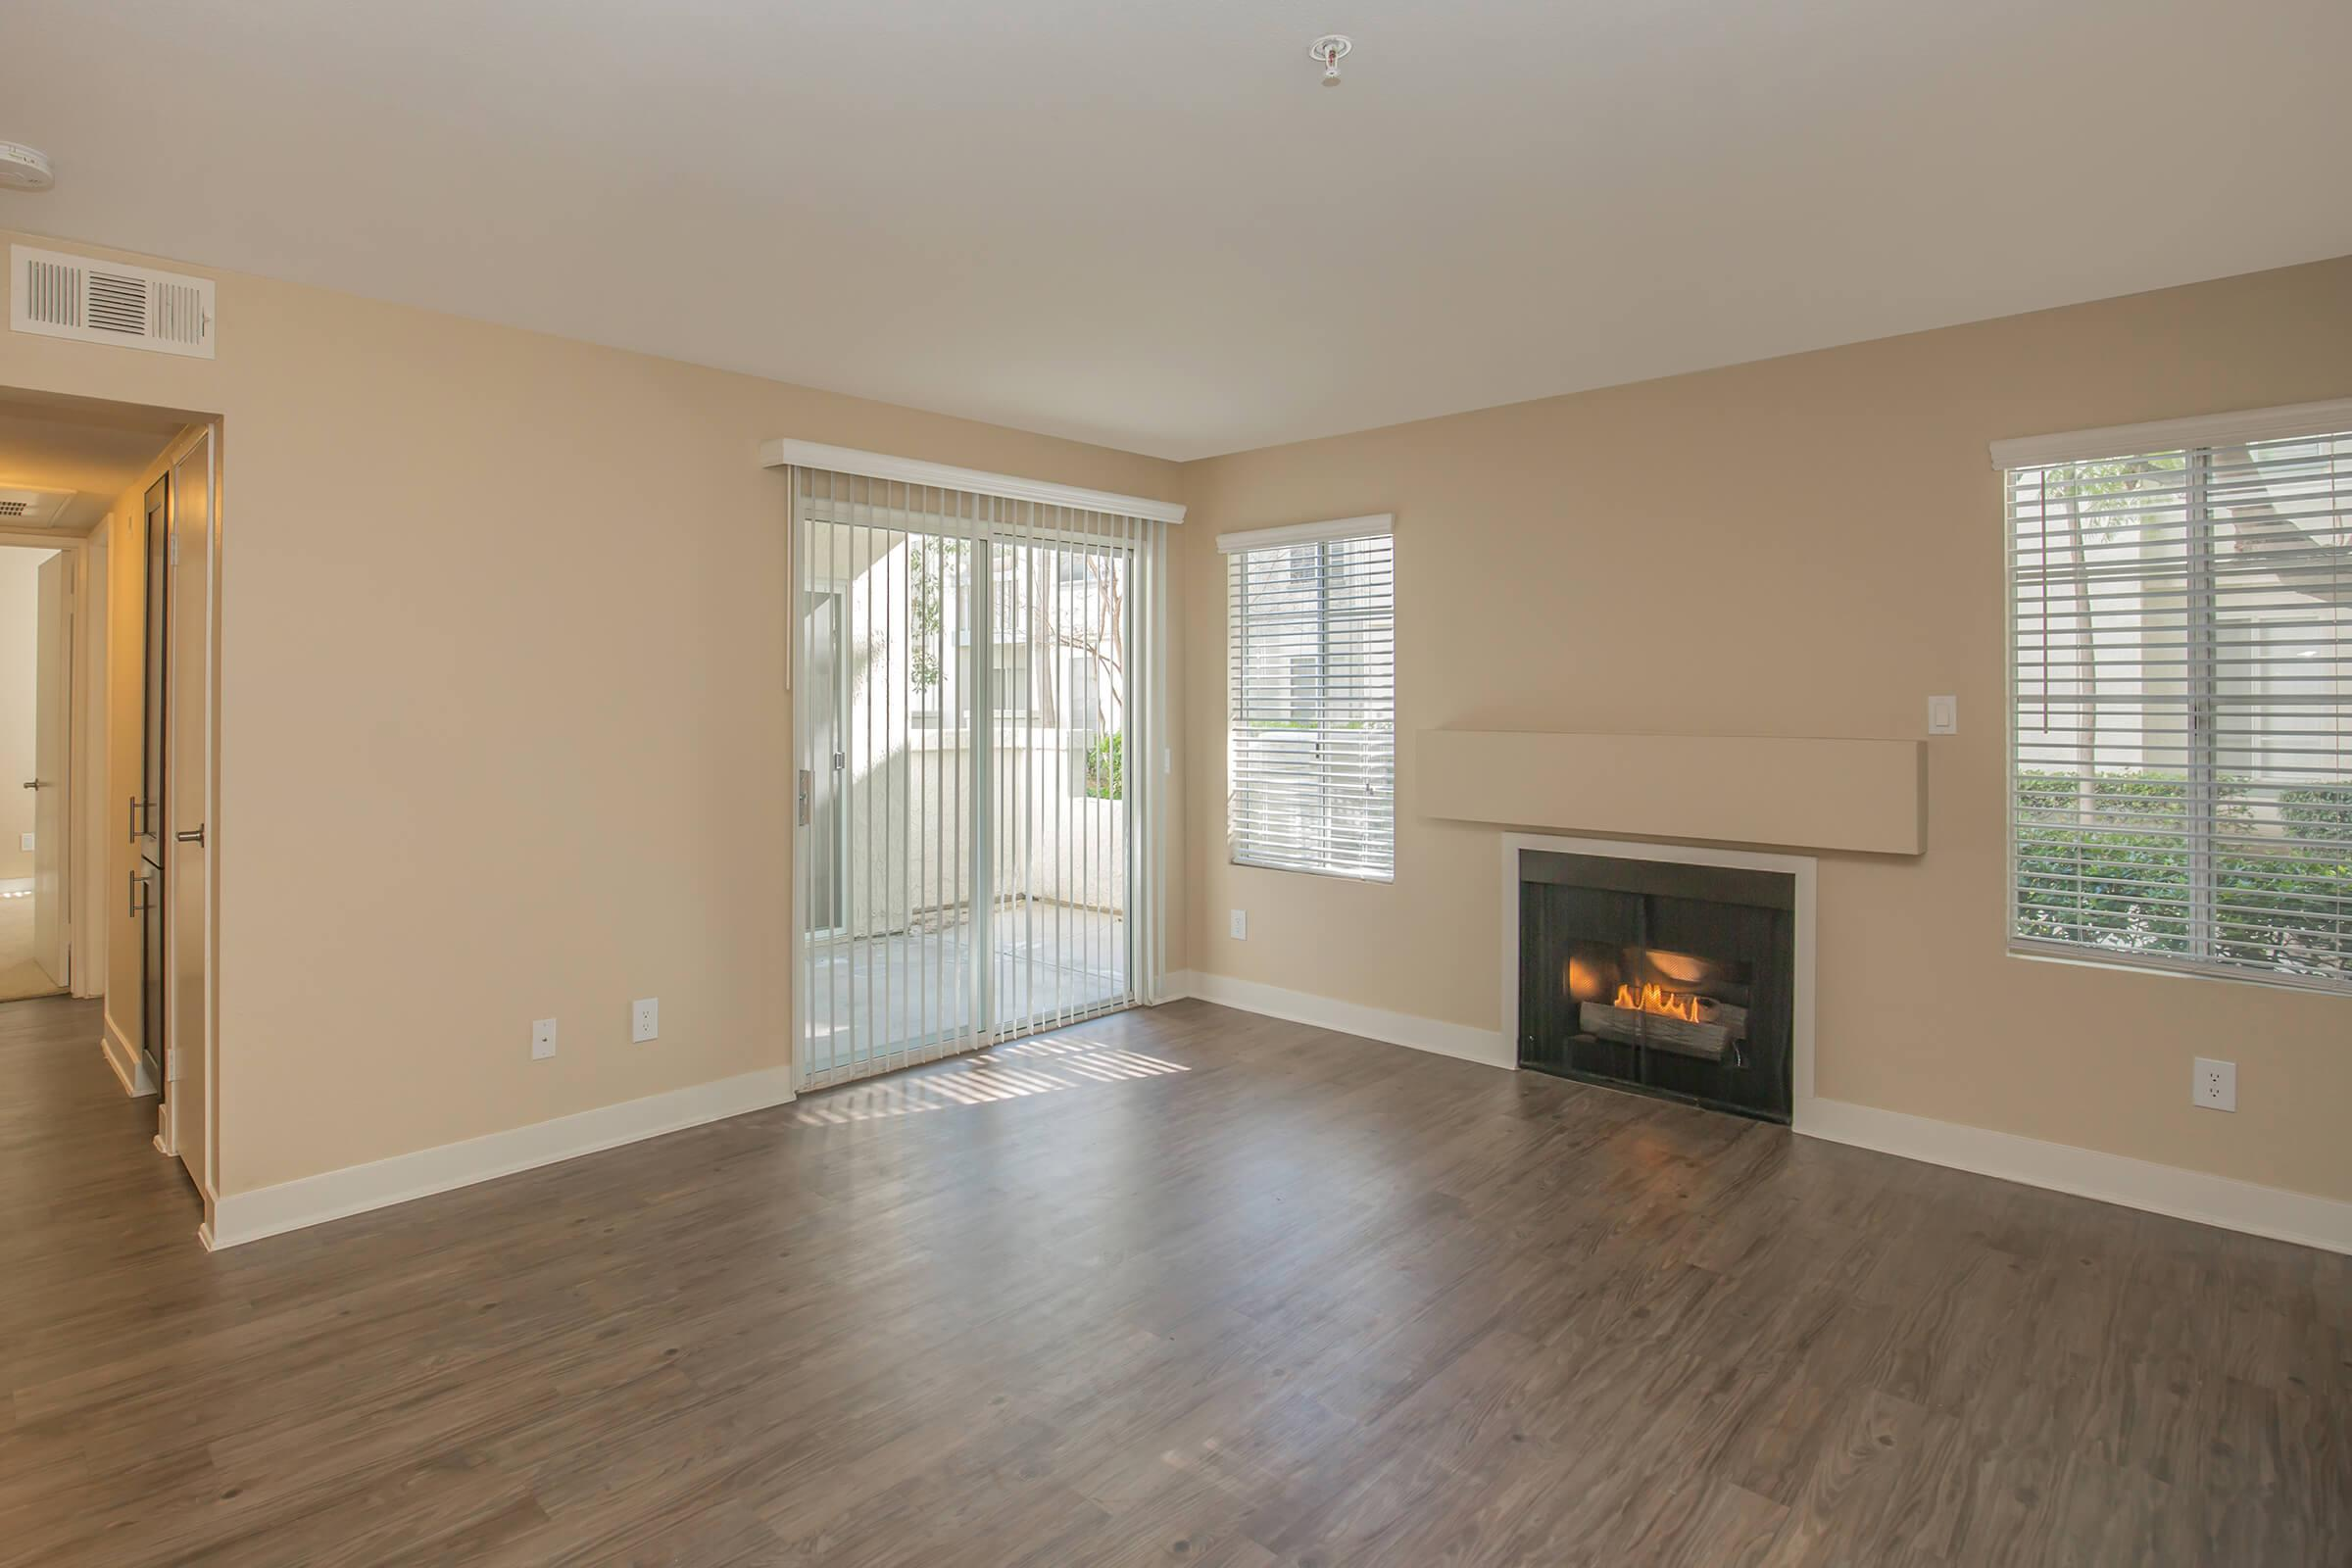 Unfurnished living room with a fireplace